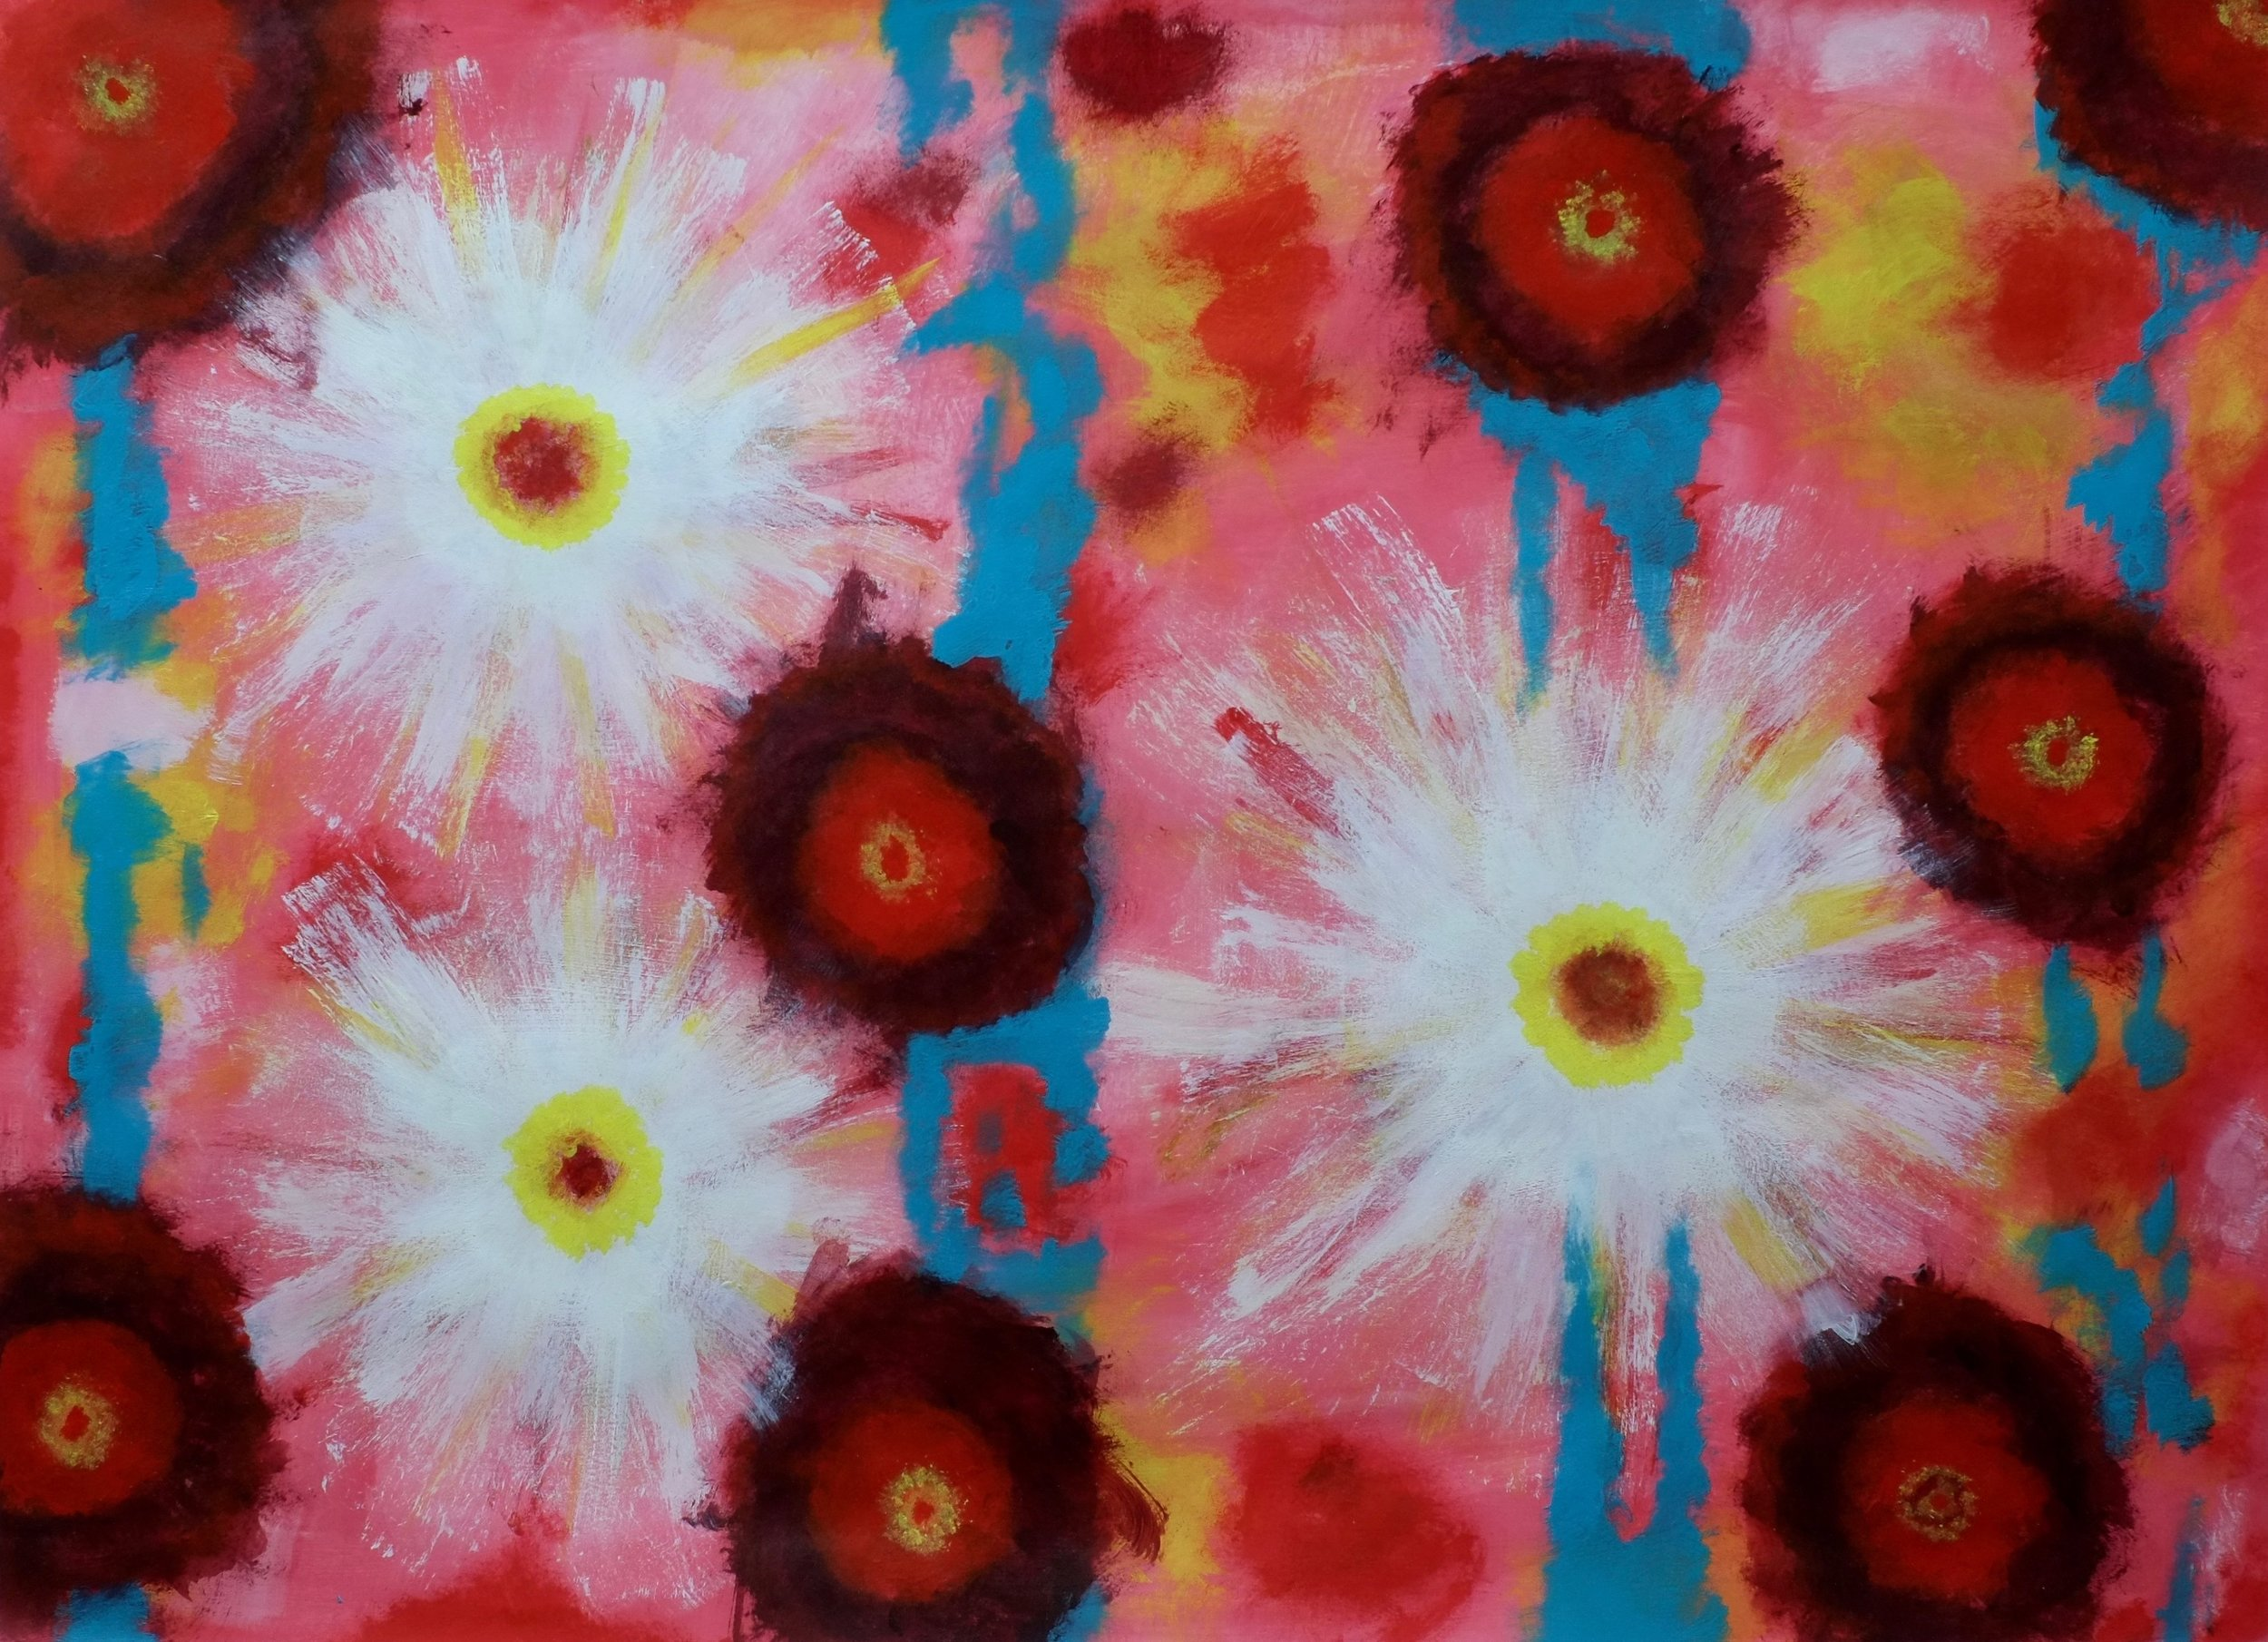 Bursts    Acrylic on Arches Watercolor Paper, 23X30in